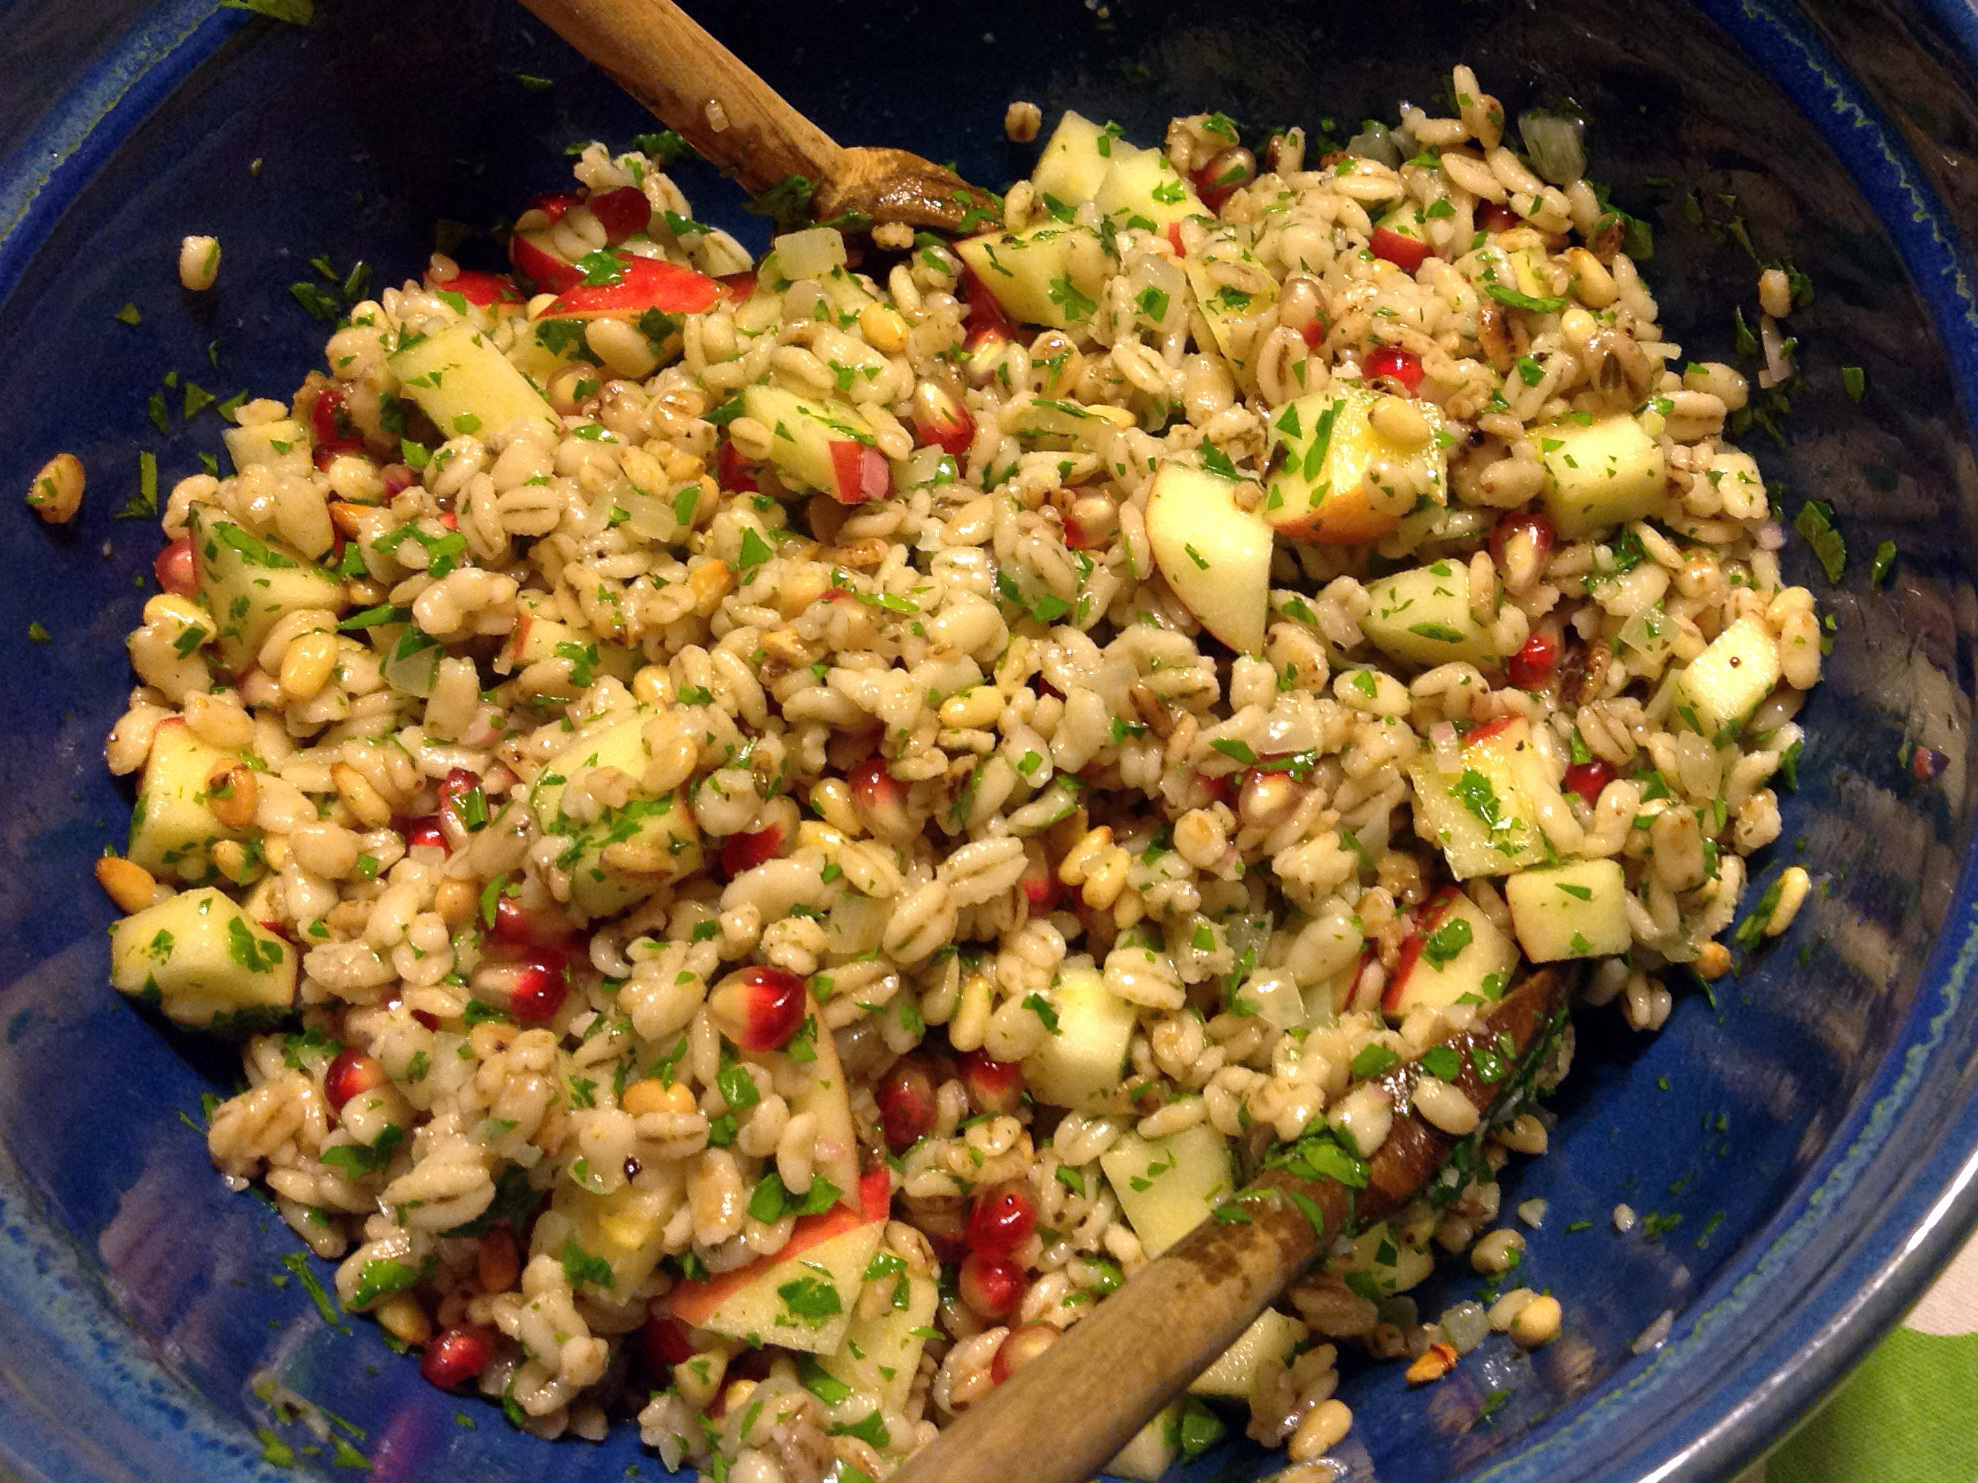 Pearled Barley Salad With Apples, Pomegranate Seeds And Pine Nuts (detail)